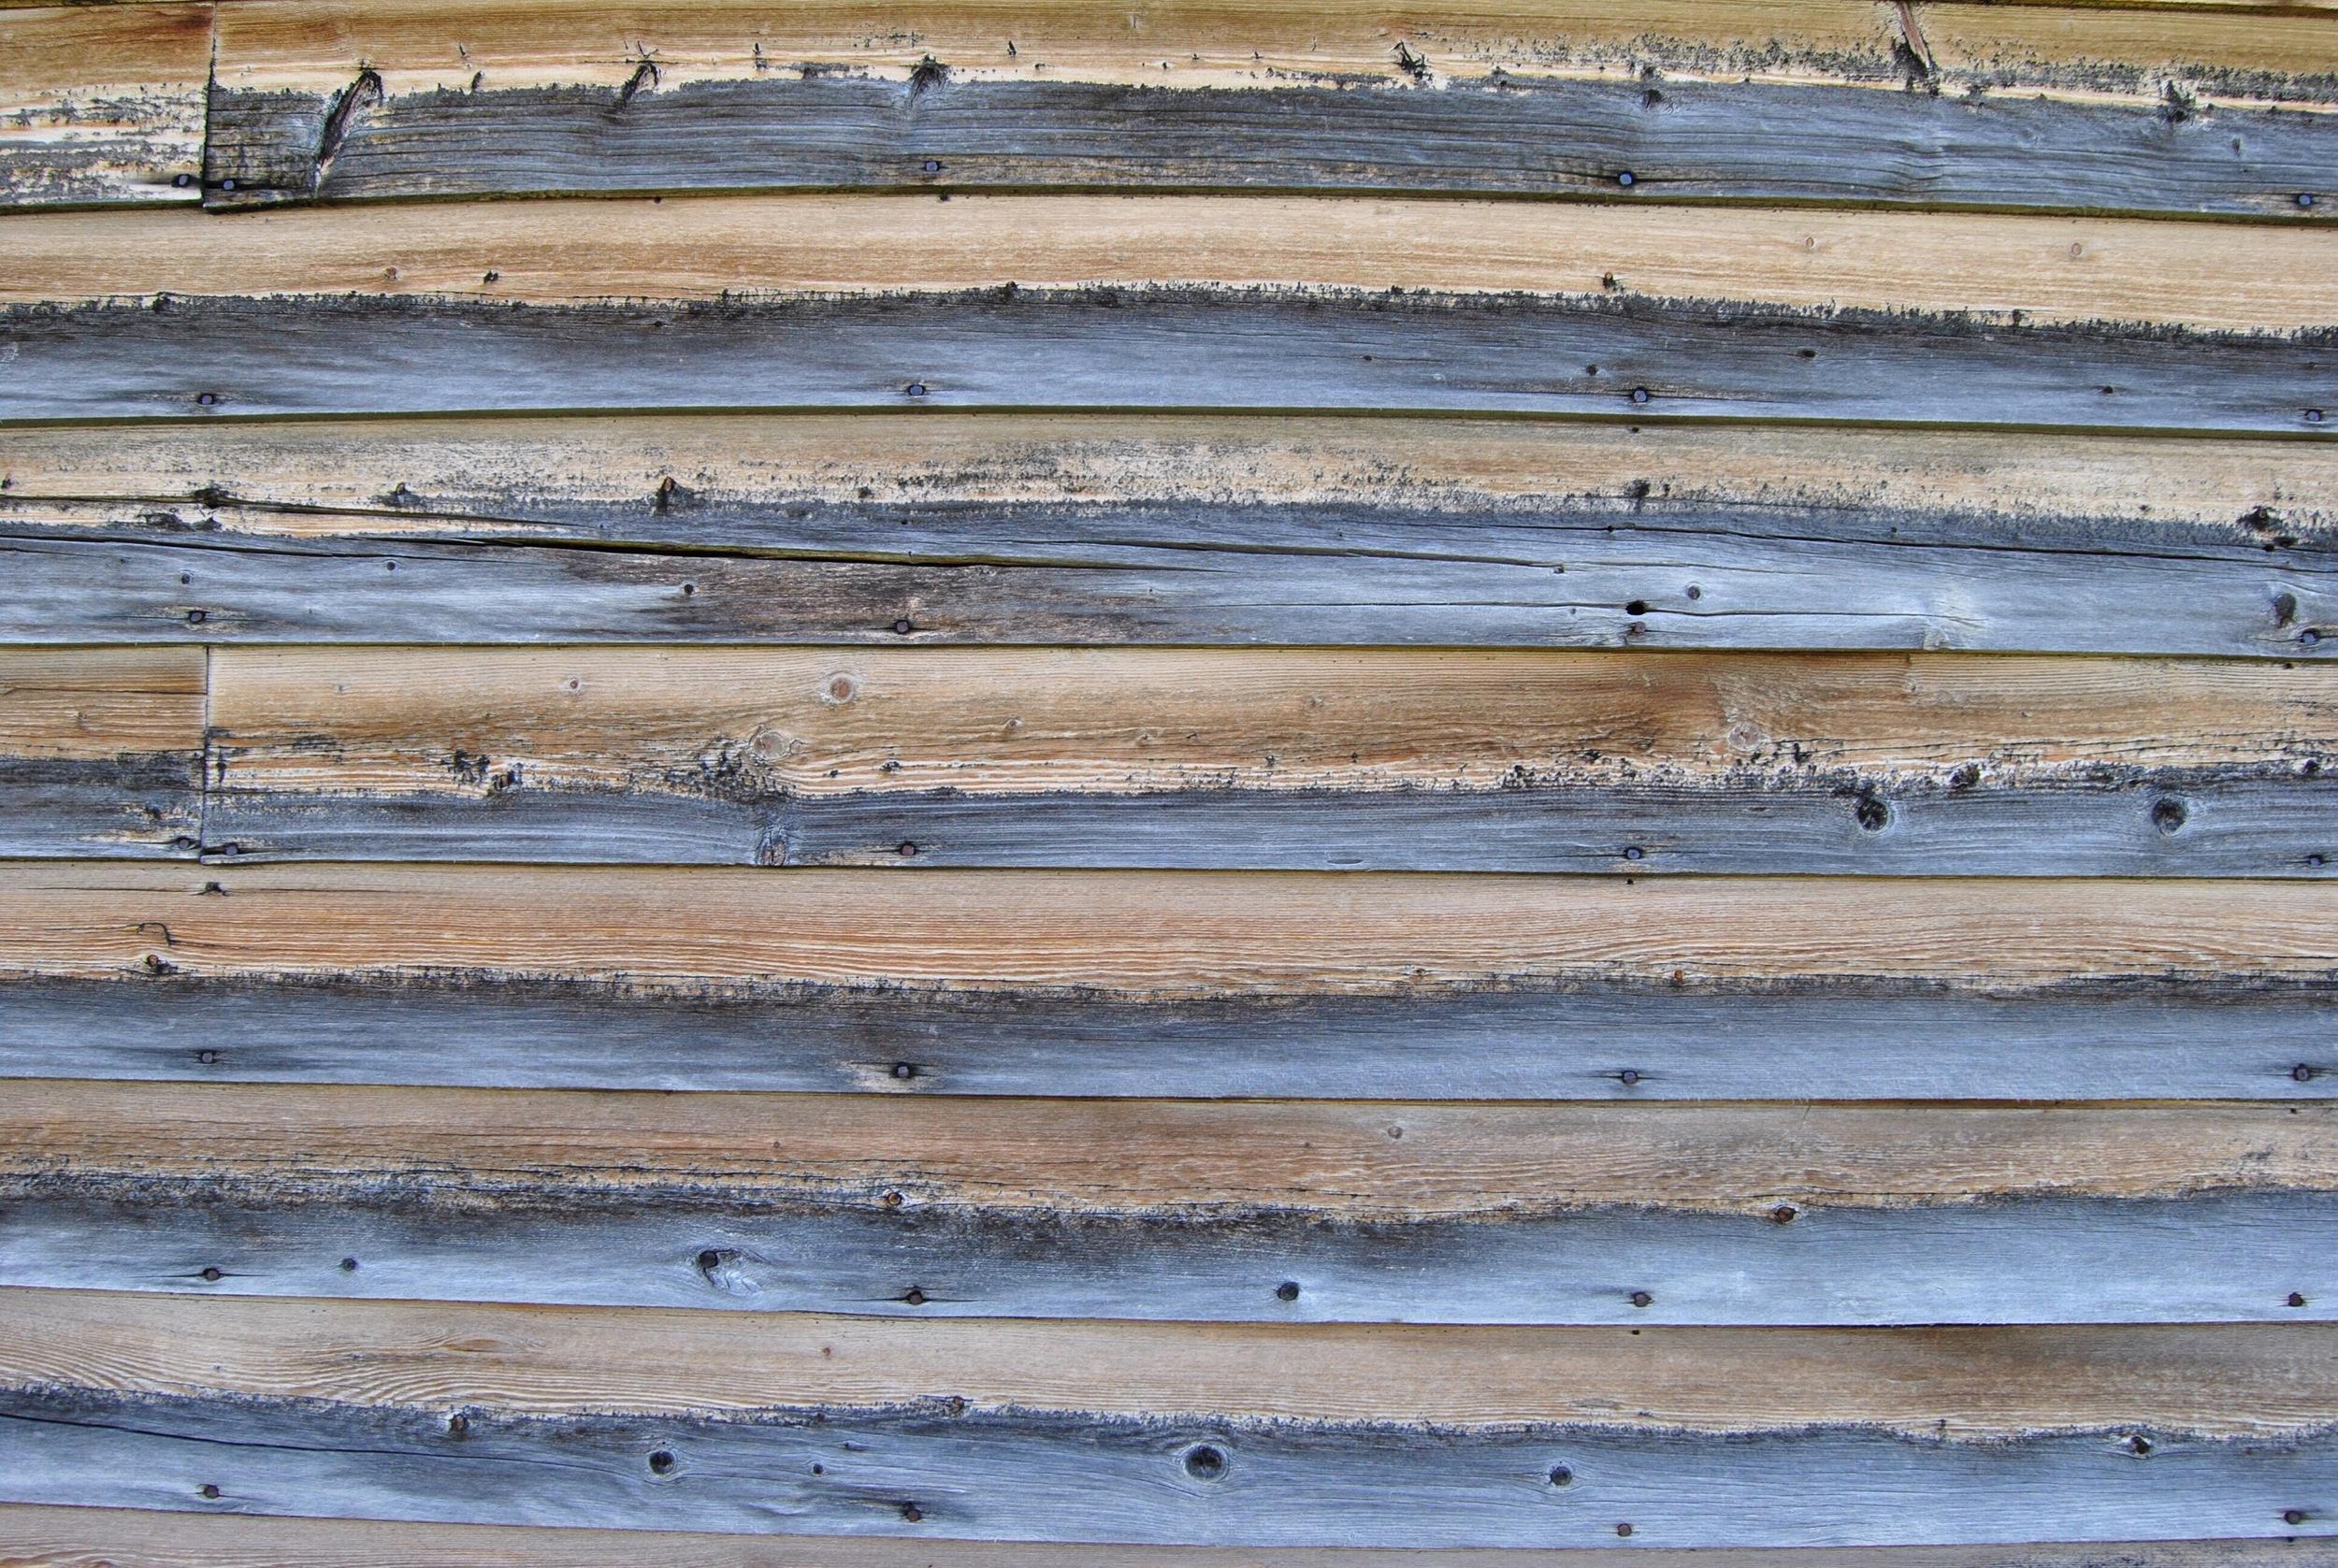 The gradient of the ageing wood was texturally beautiful.